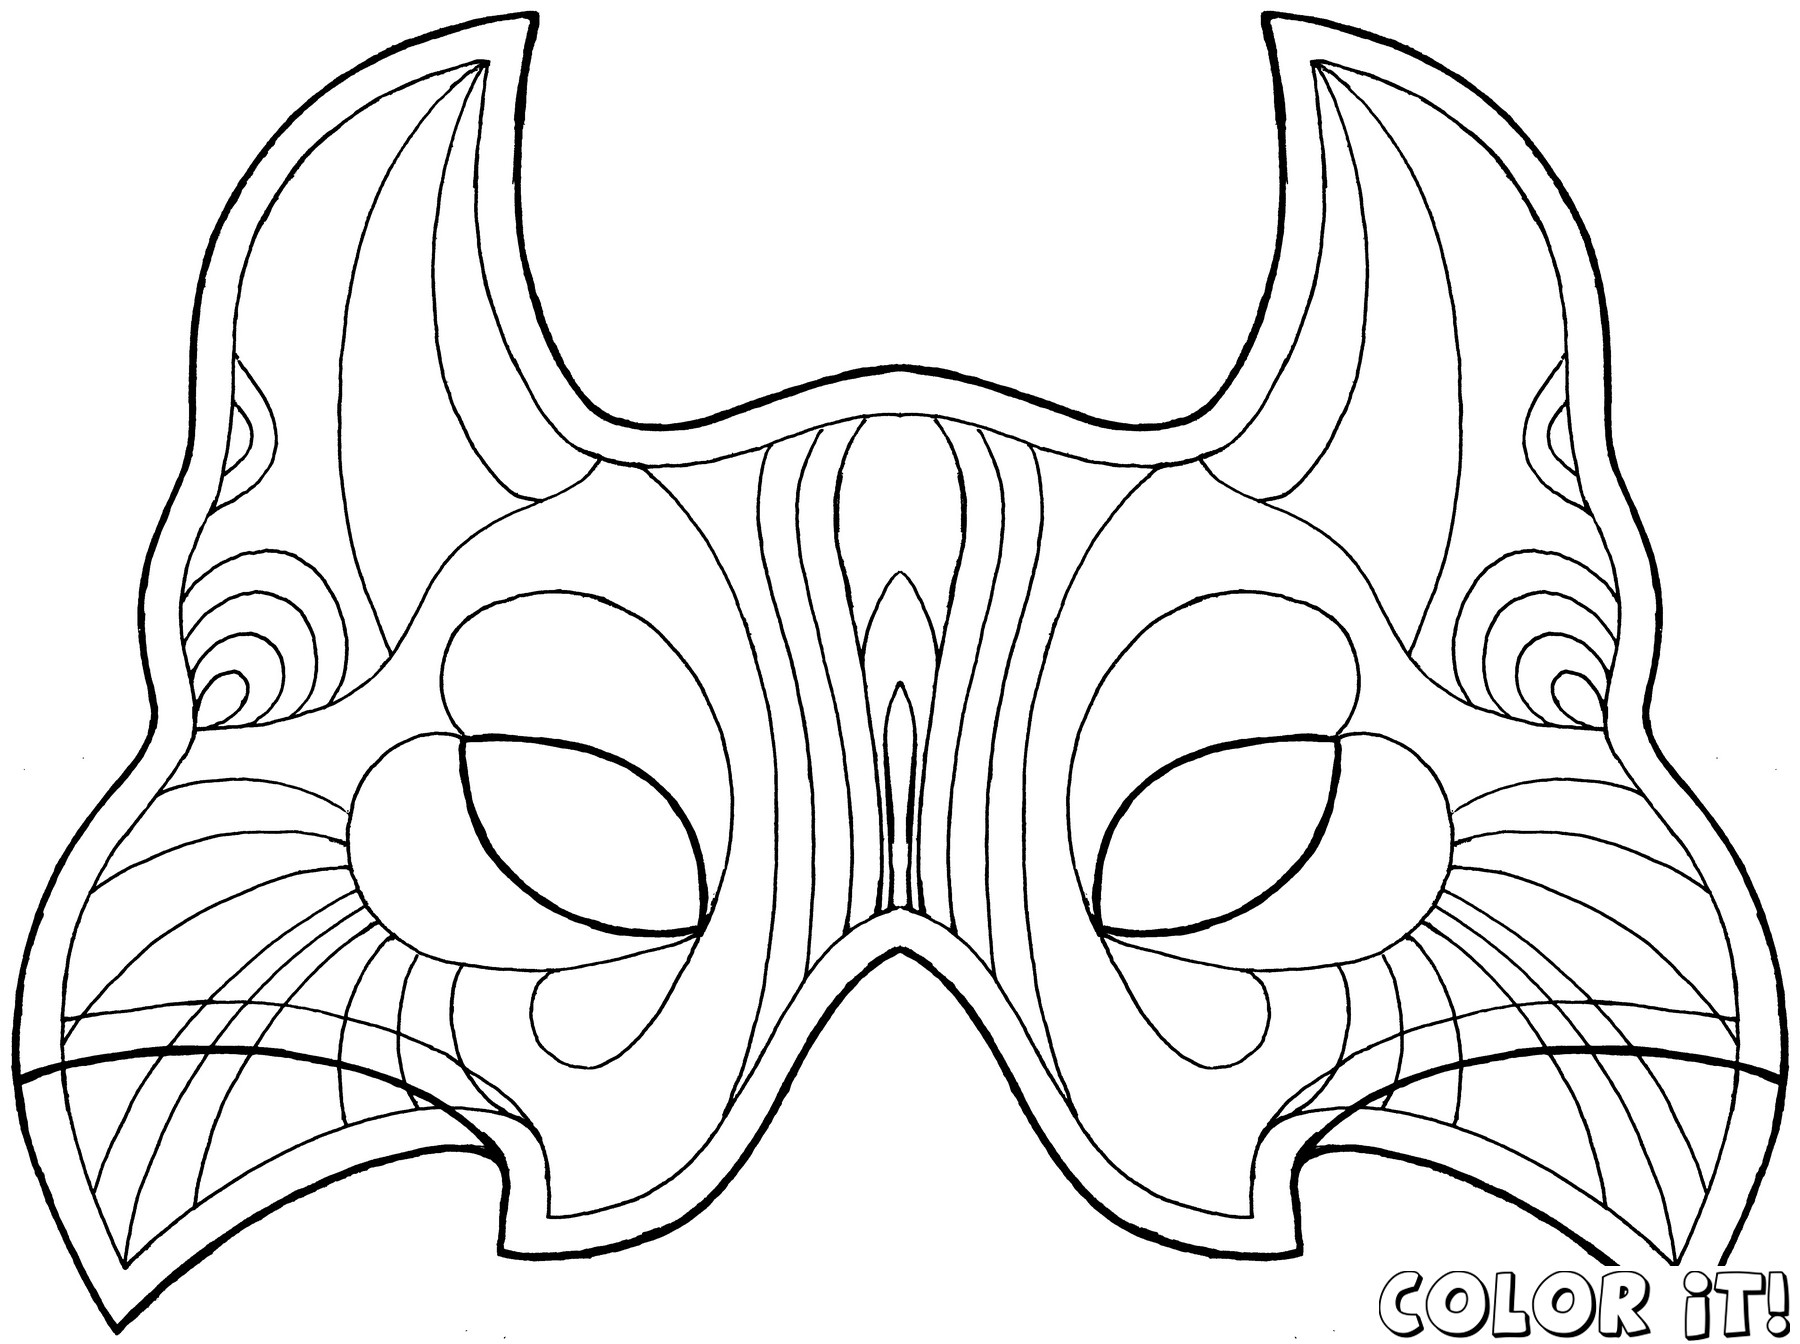 1800x1344 Free Printable Masks Coloring Pages Preschool For Pretty Draw Mask